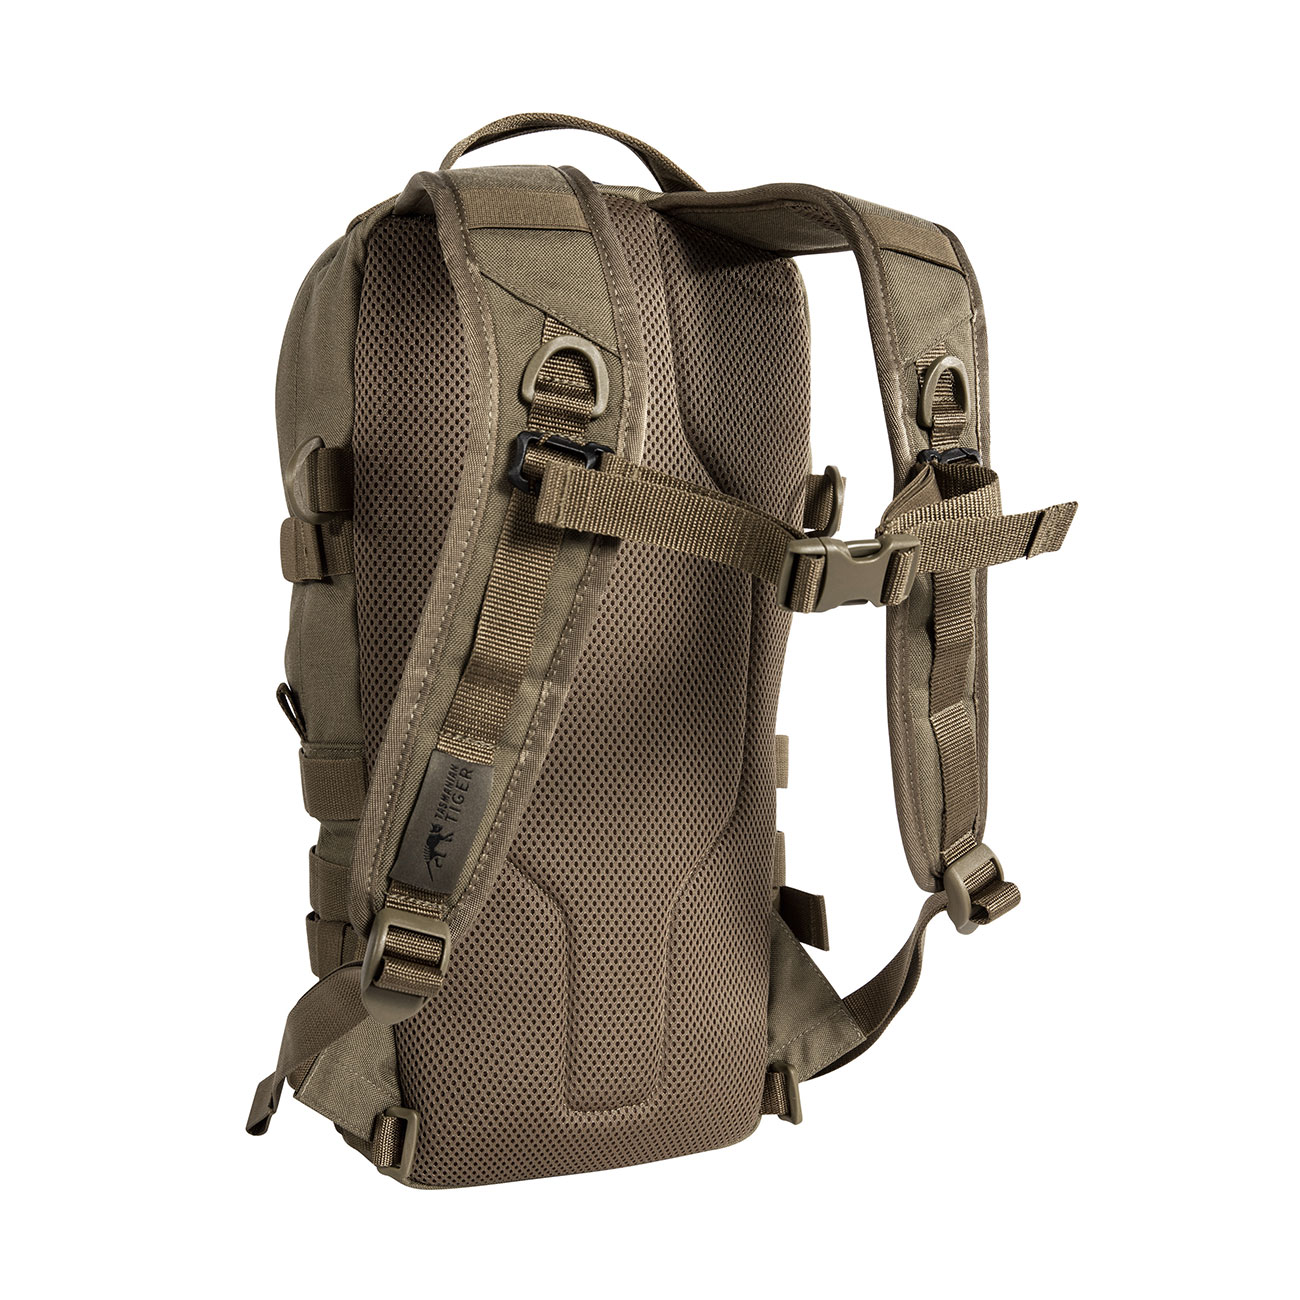 Tasmanian Tiger Tagesrucksack TT Essential Pack MKII coyote brown 9 Liter 2